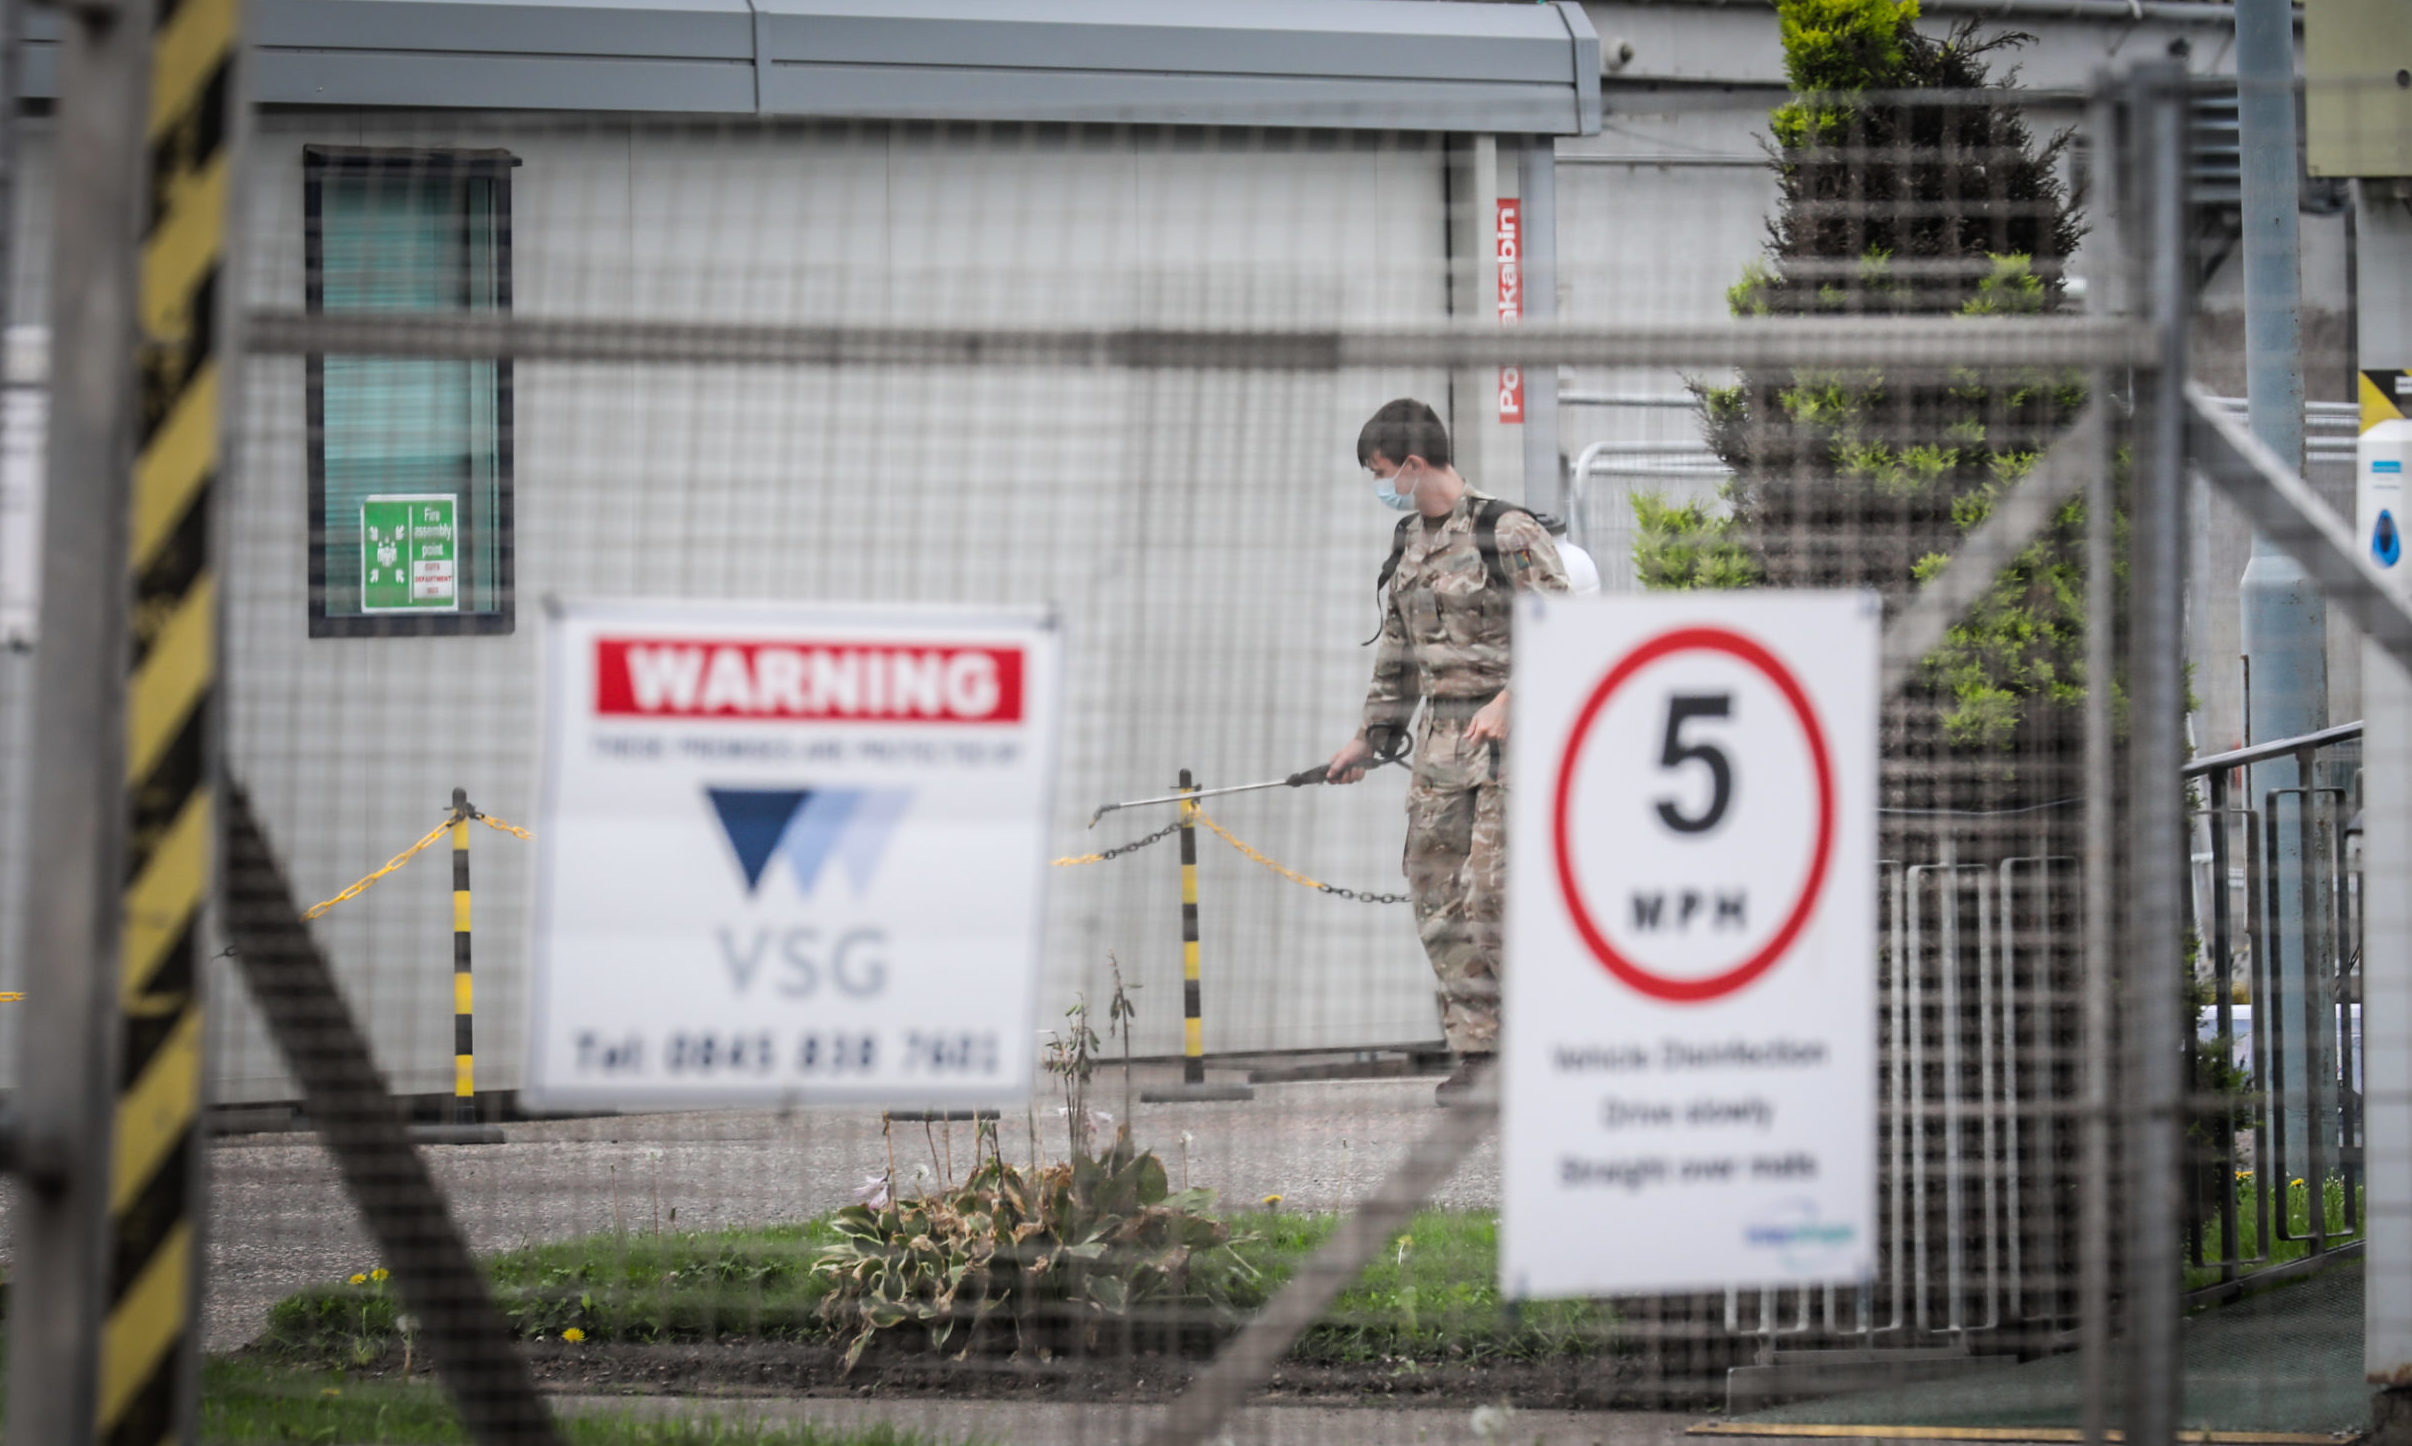 The Army was involved at the 2 Sisters chicken processing site outbreak clear up.